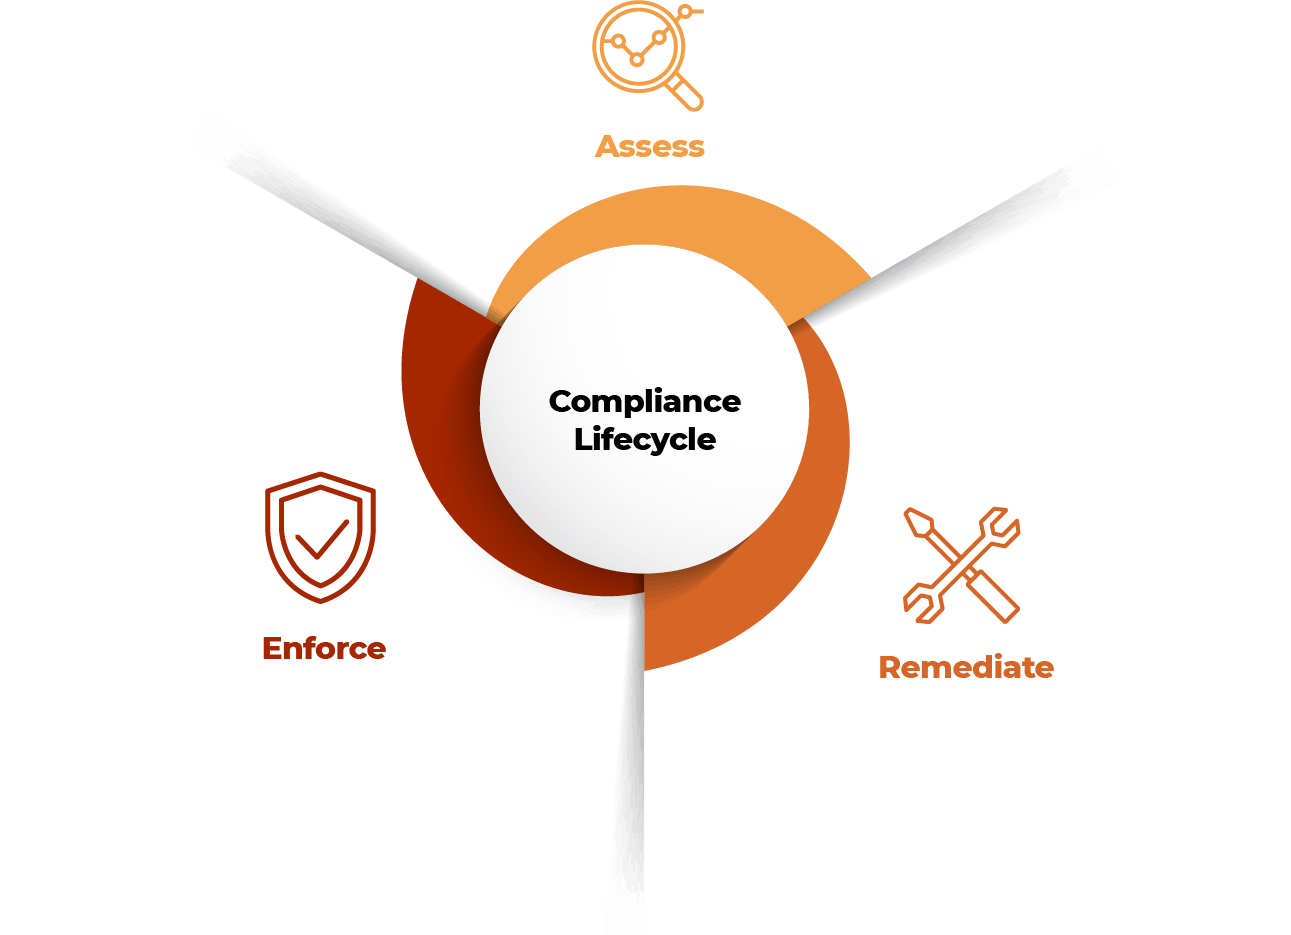 compliance lifecycle diagram